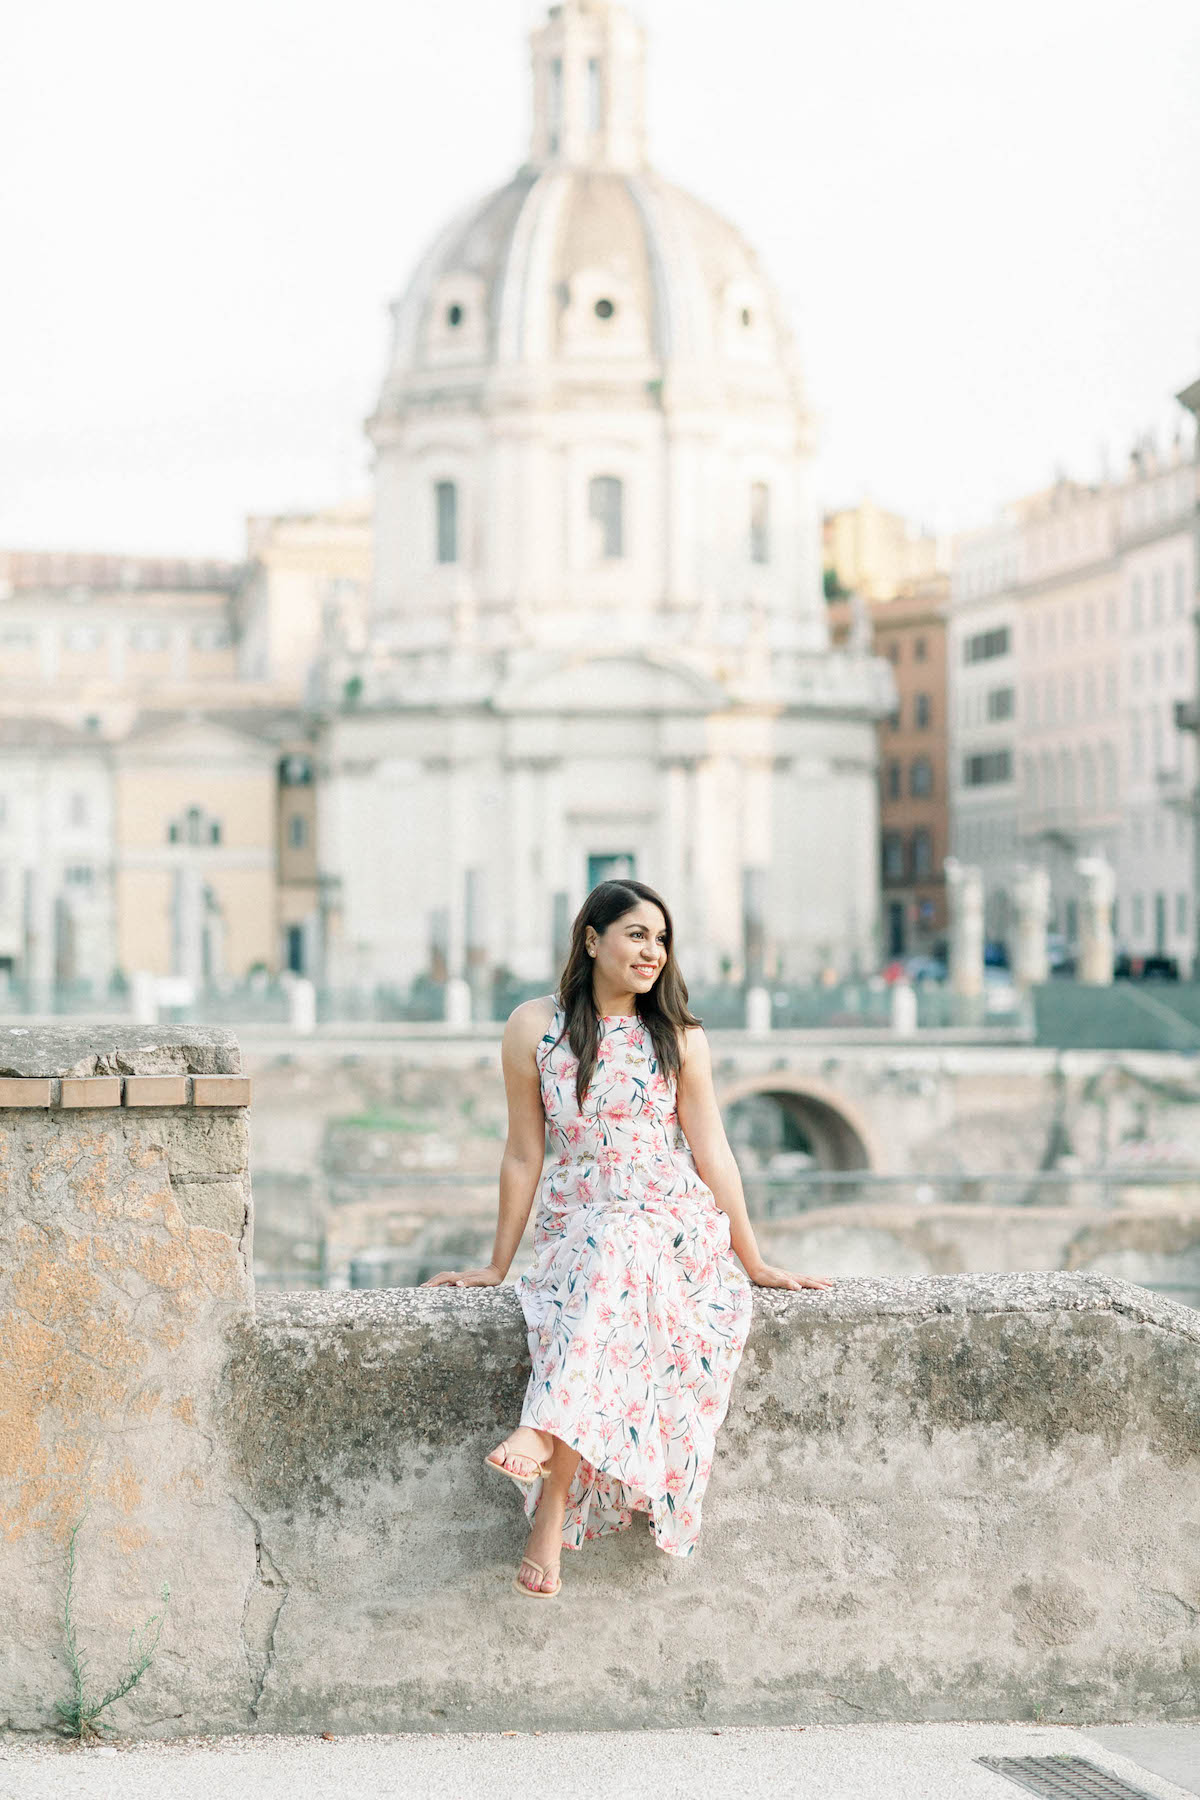 A young woman in a pretty floral dress sitting on a wall in front of iconic buildings in Rome, Italy.